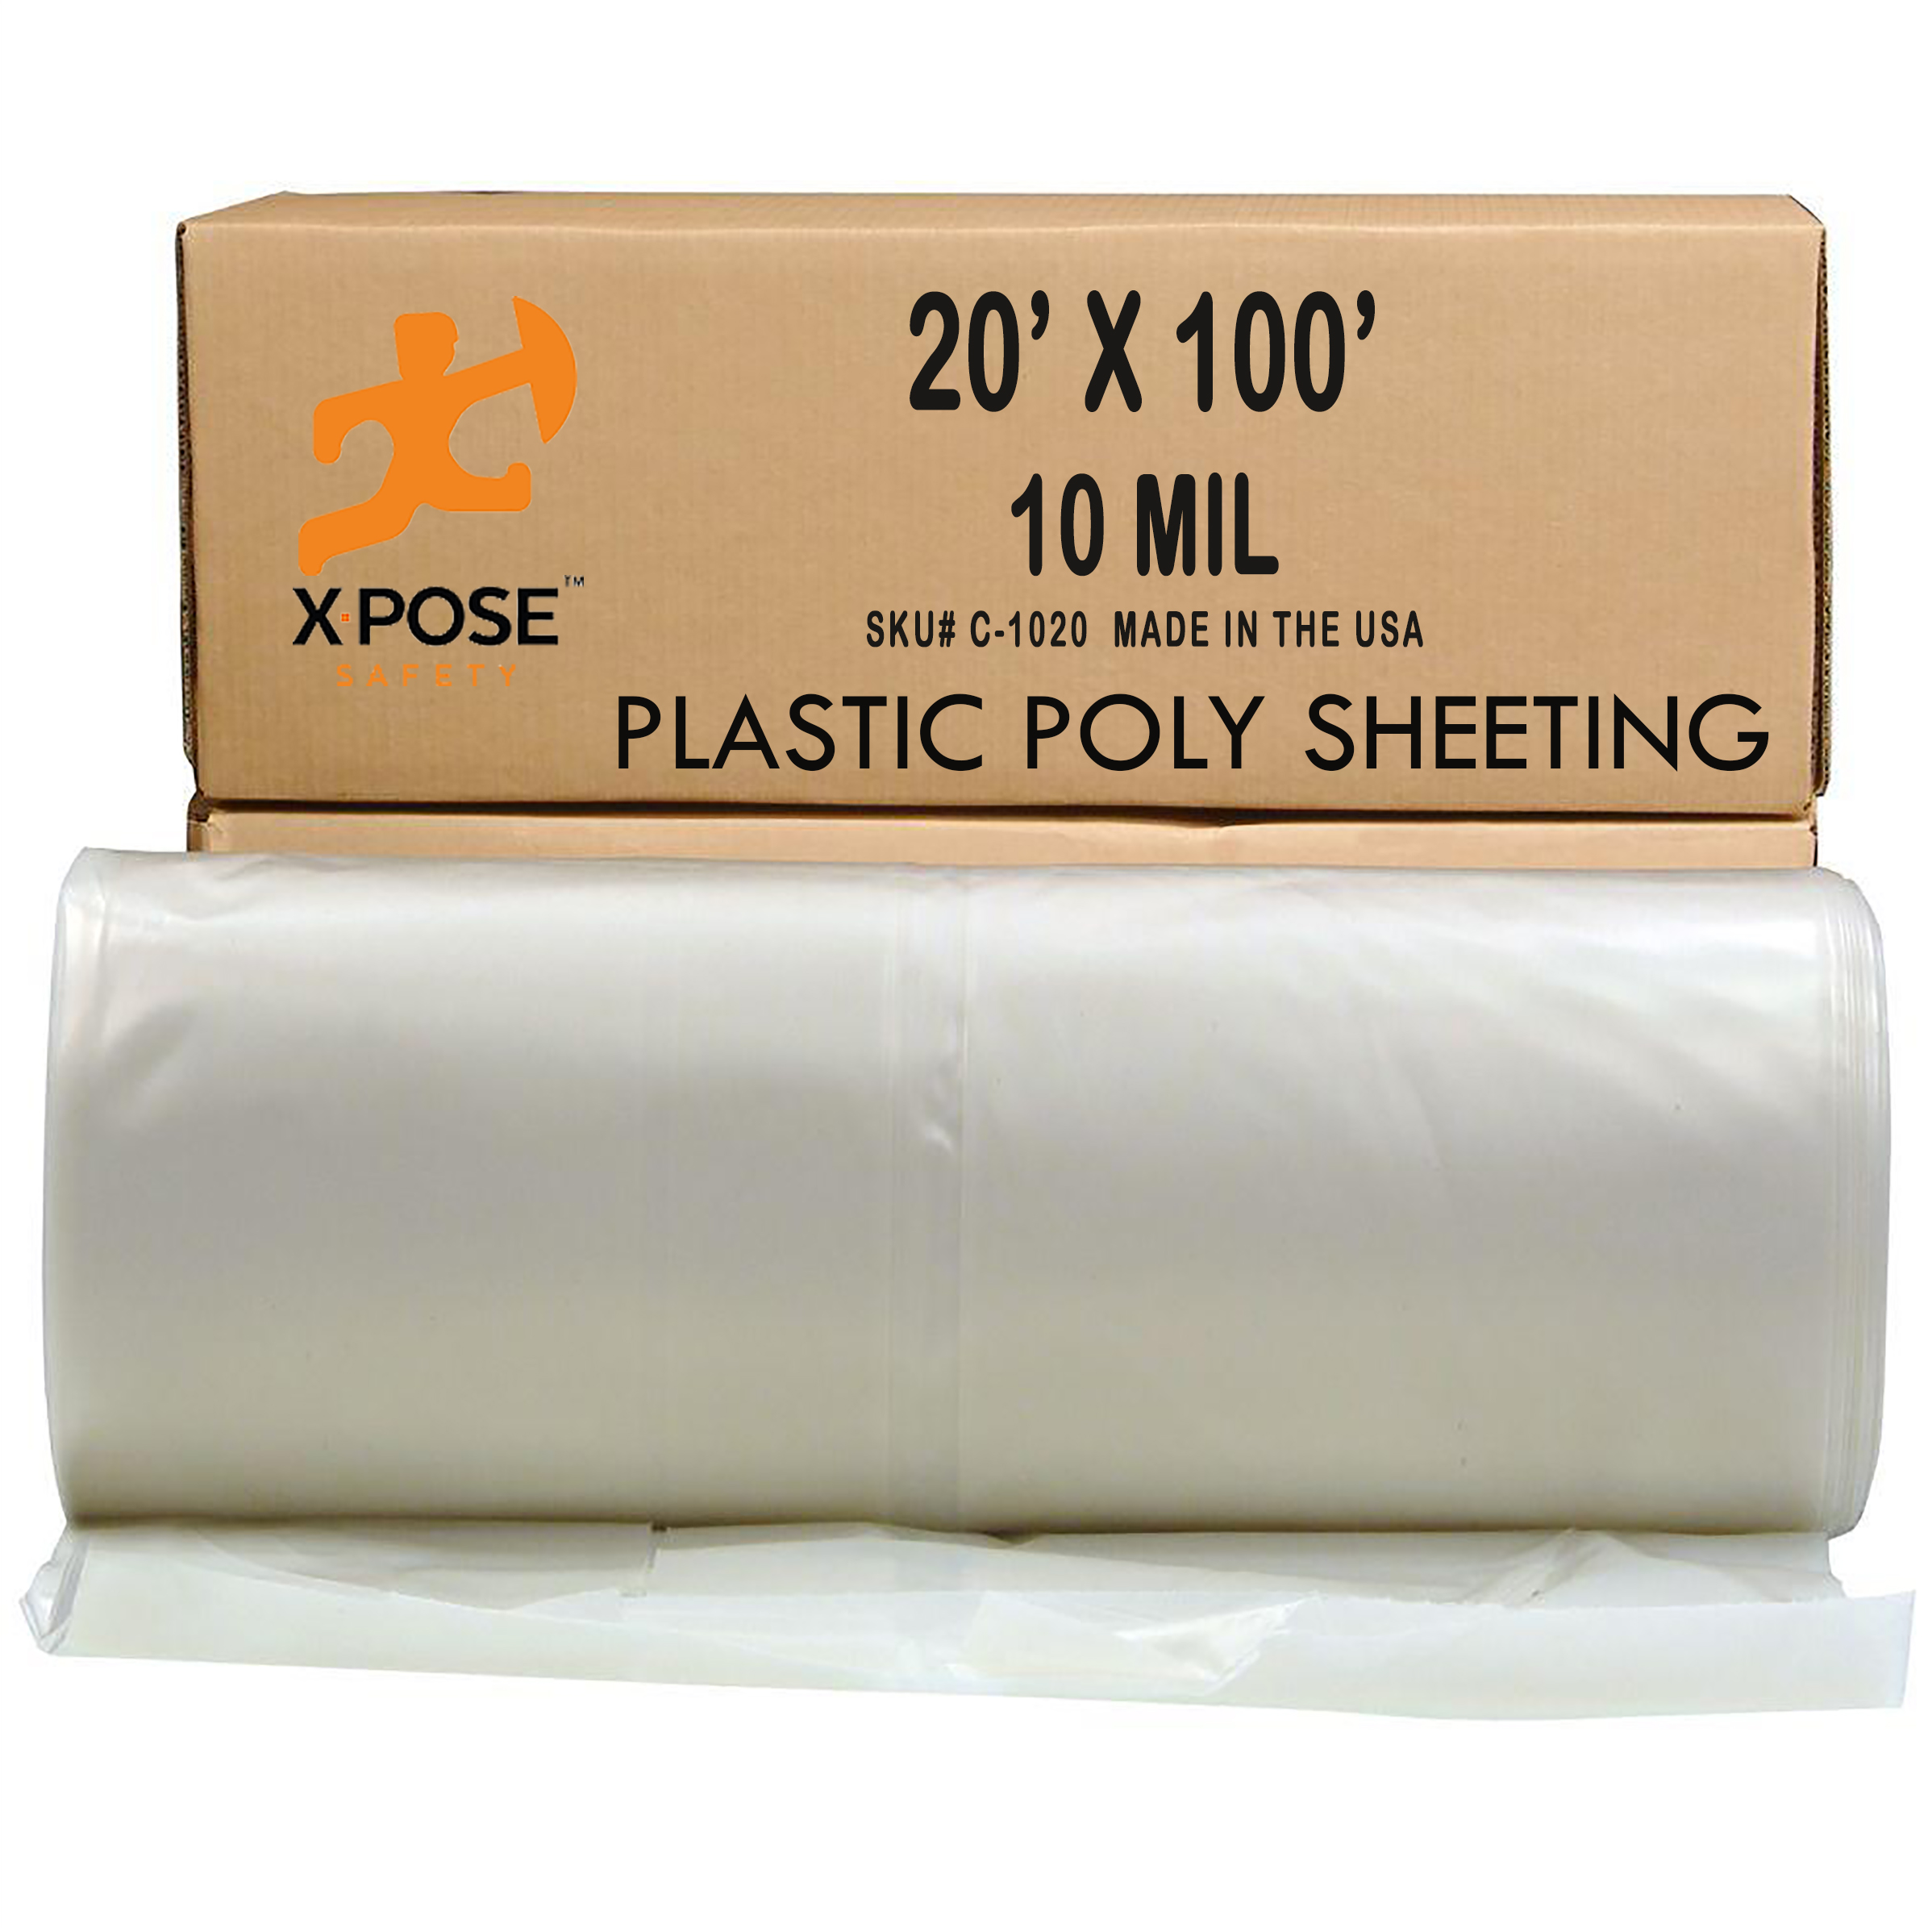 Clear Plastic Poly Sheeting 20' x 100' 10 mil C-1020